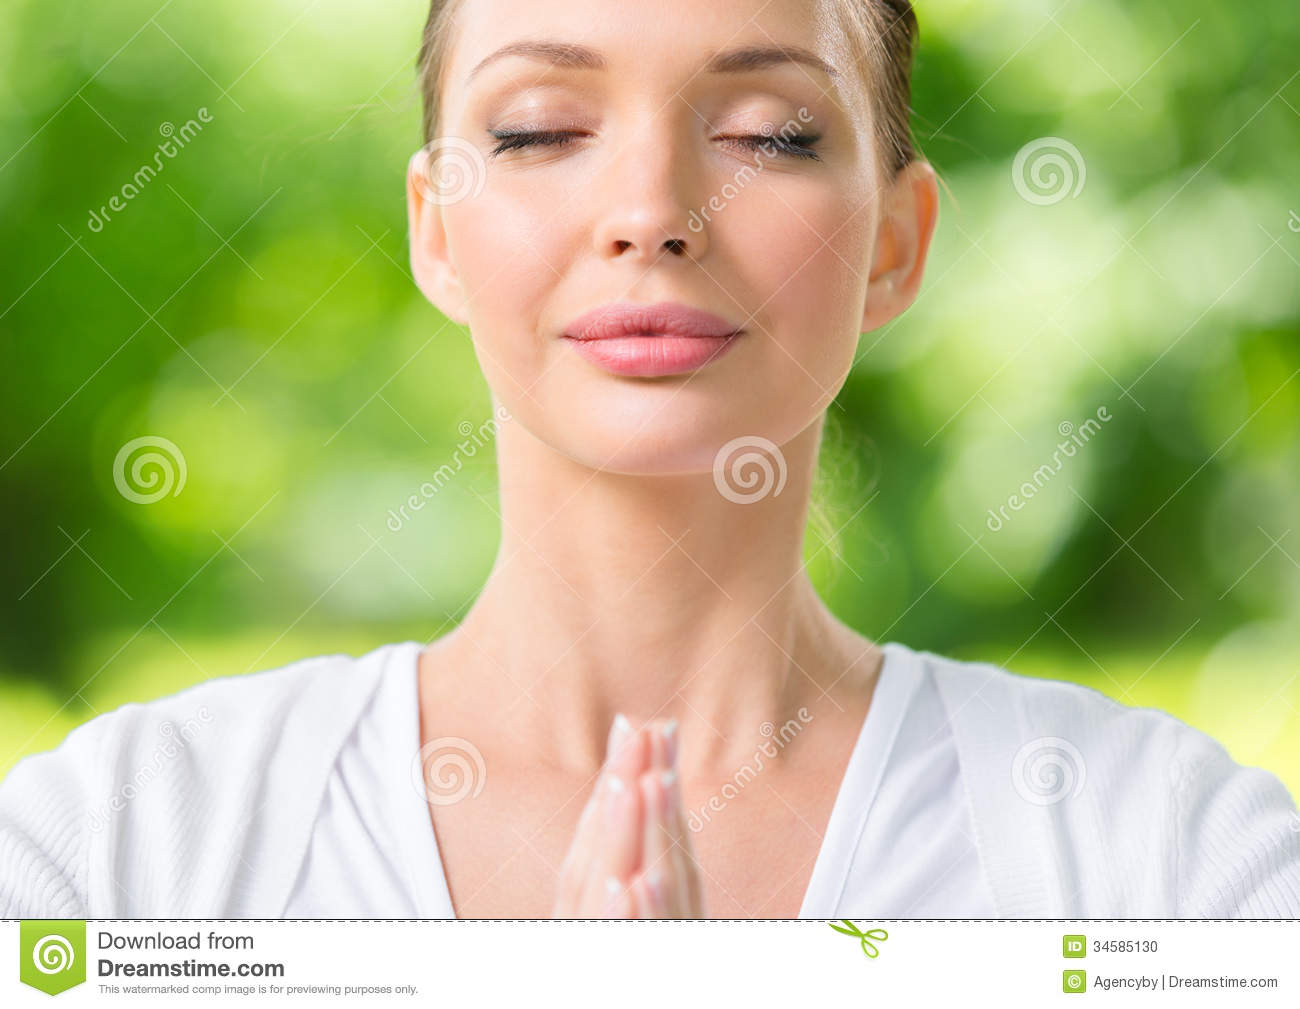 Close up of woman with eyes closed prayer gesturing